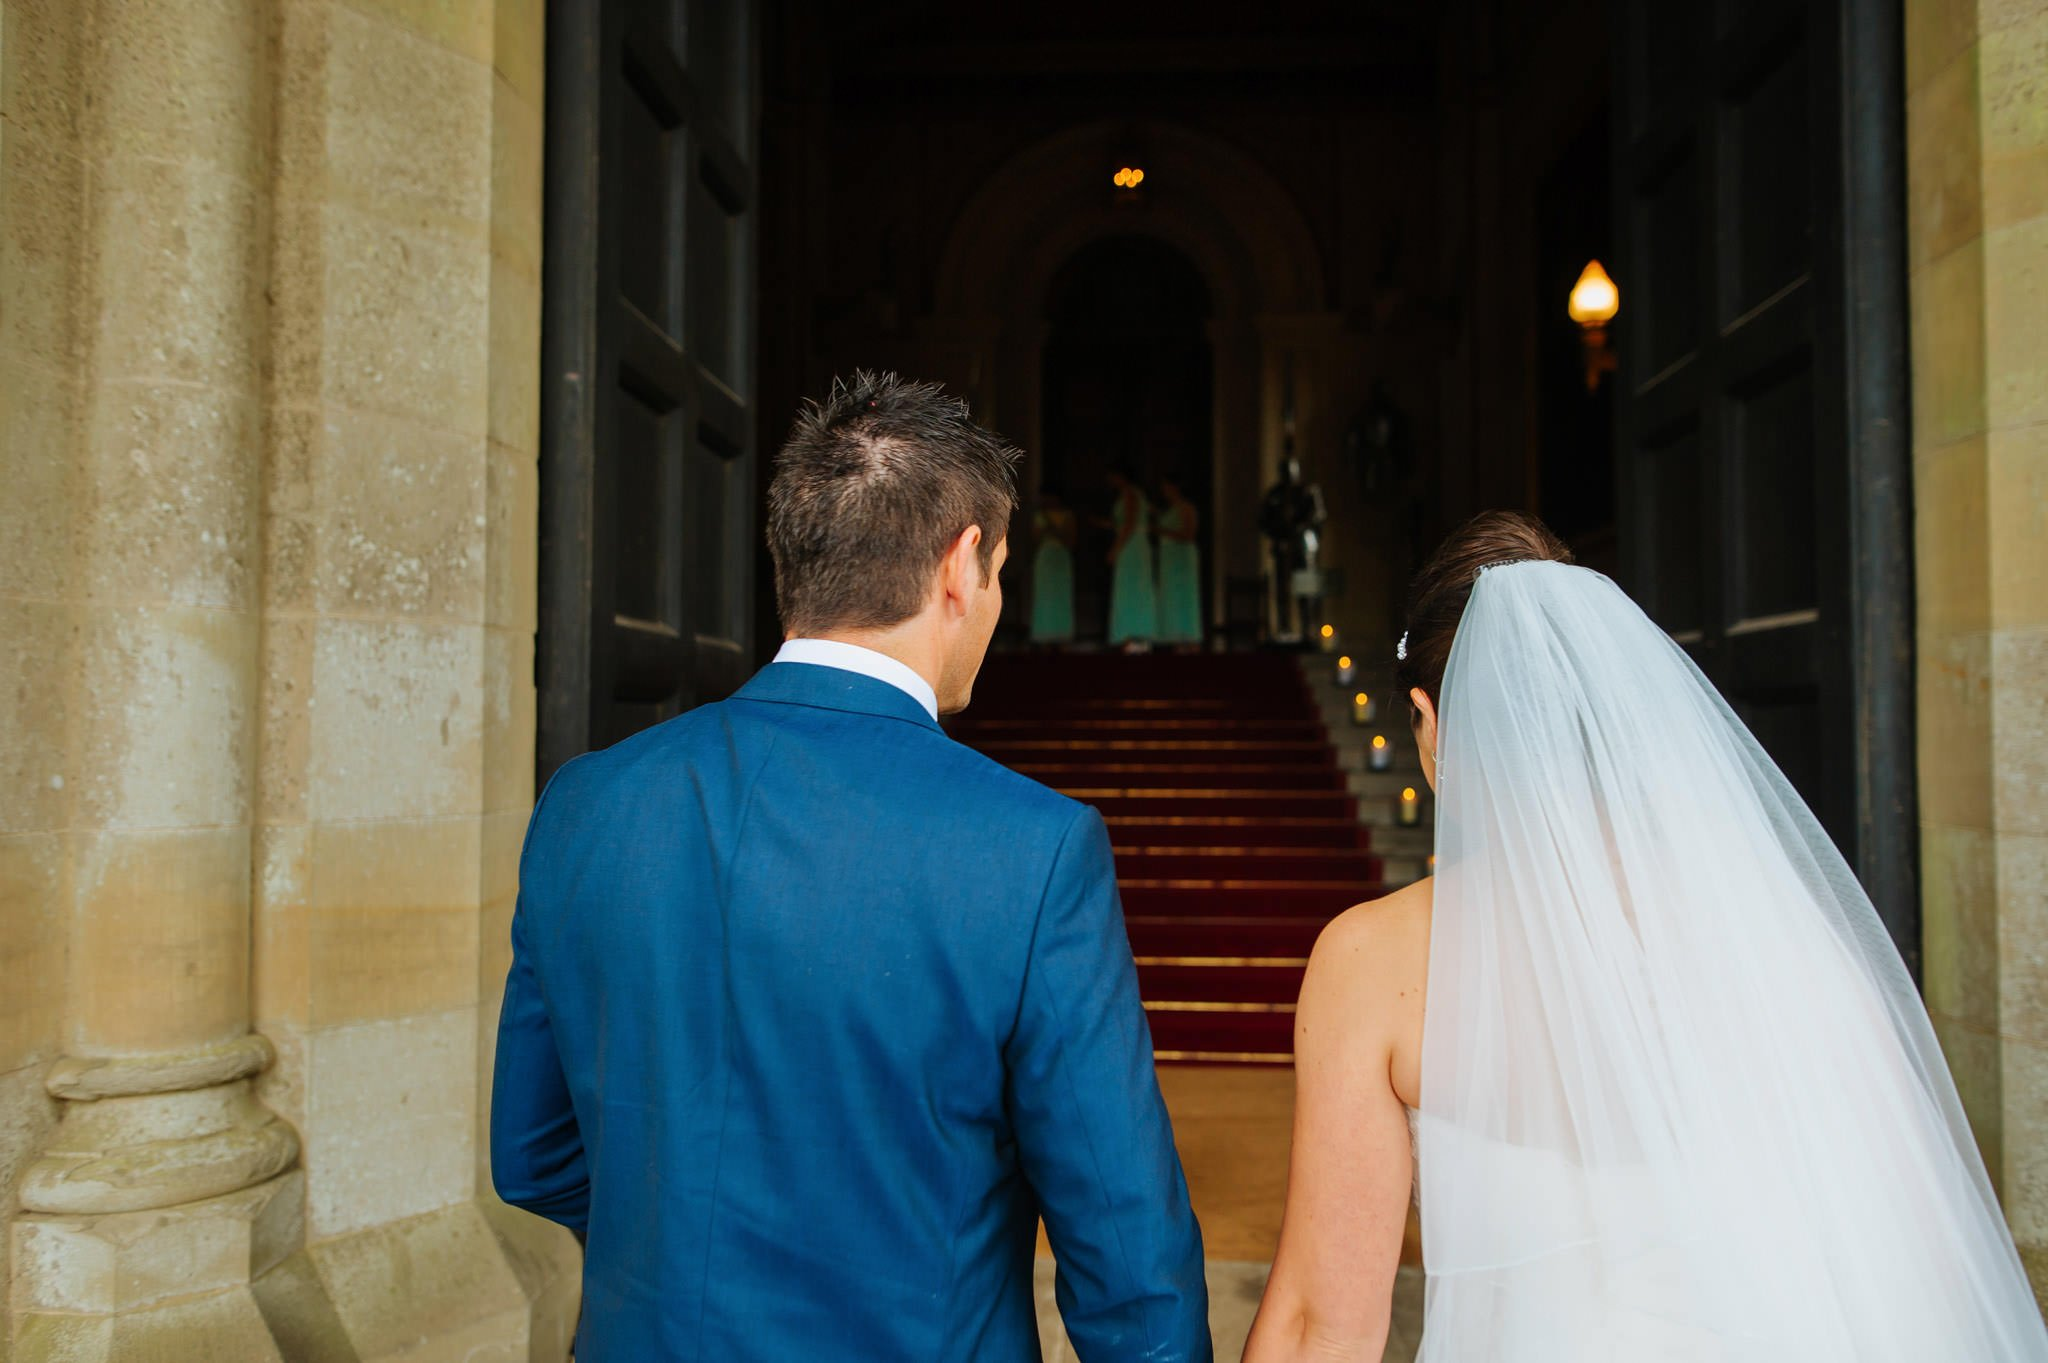 eastnor castle wedding pictures 55 - Eastnor Castle wedding photographer Herefordshire, West Midlands - Sarah + Dean